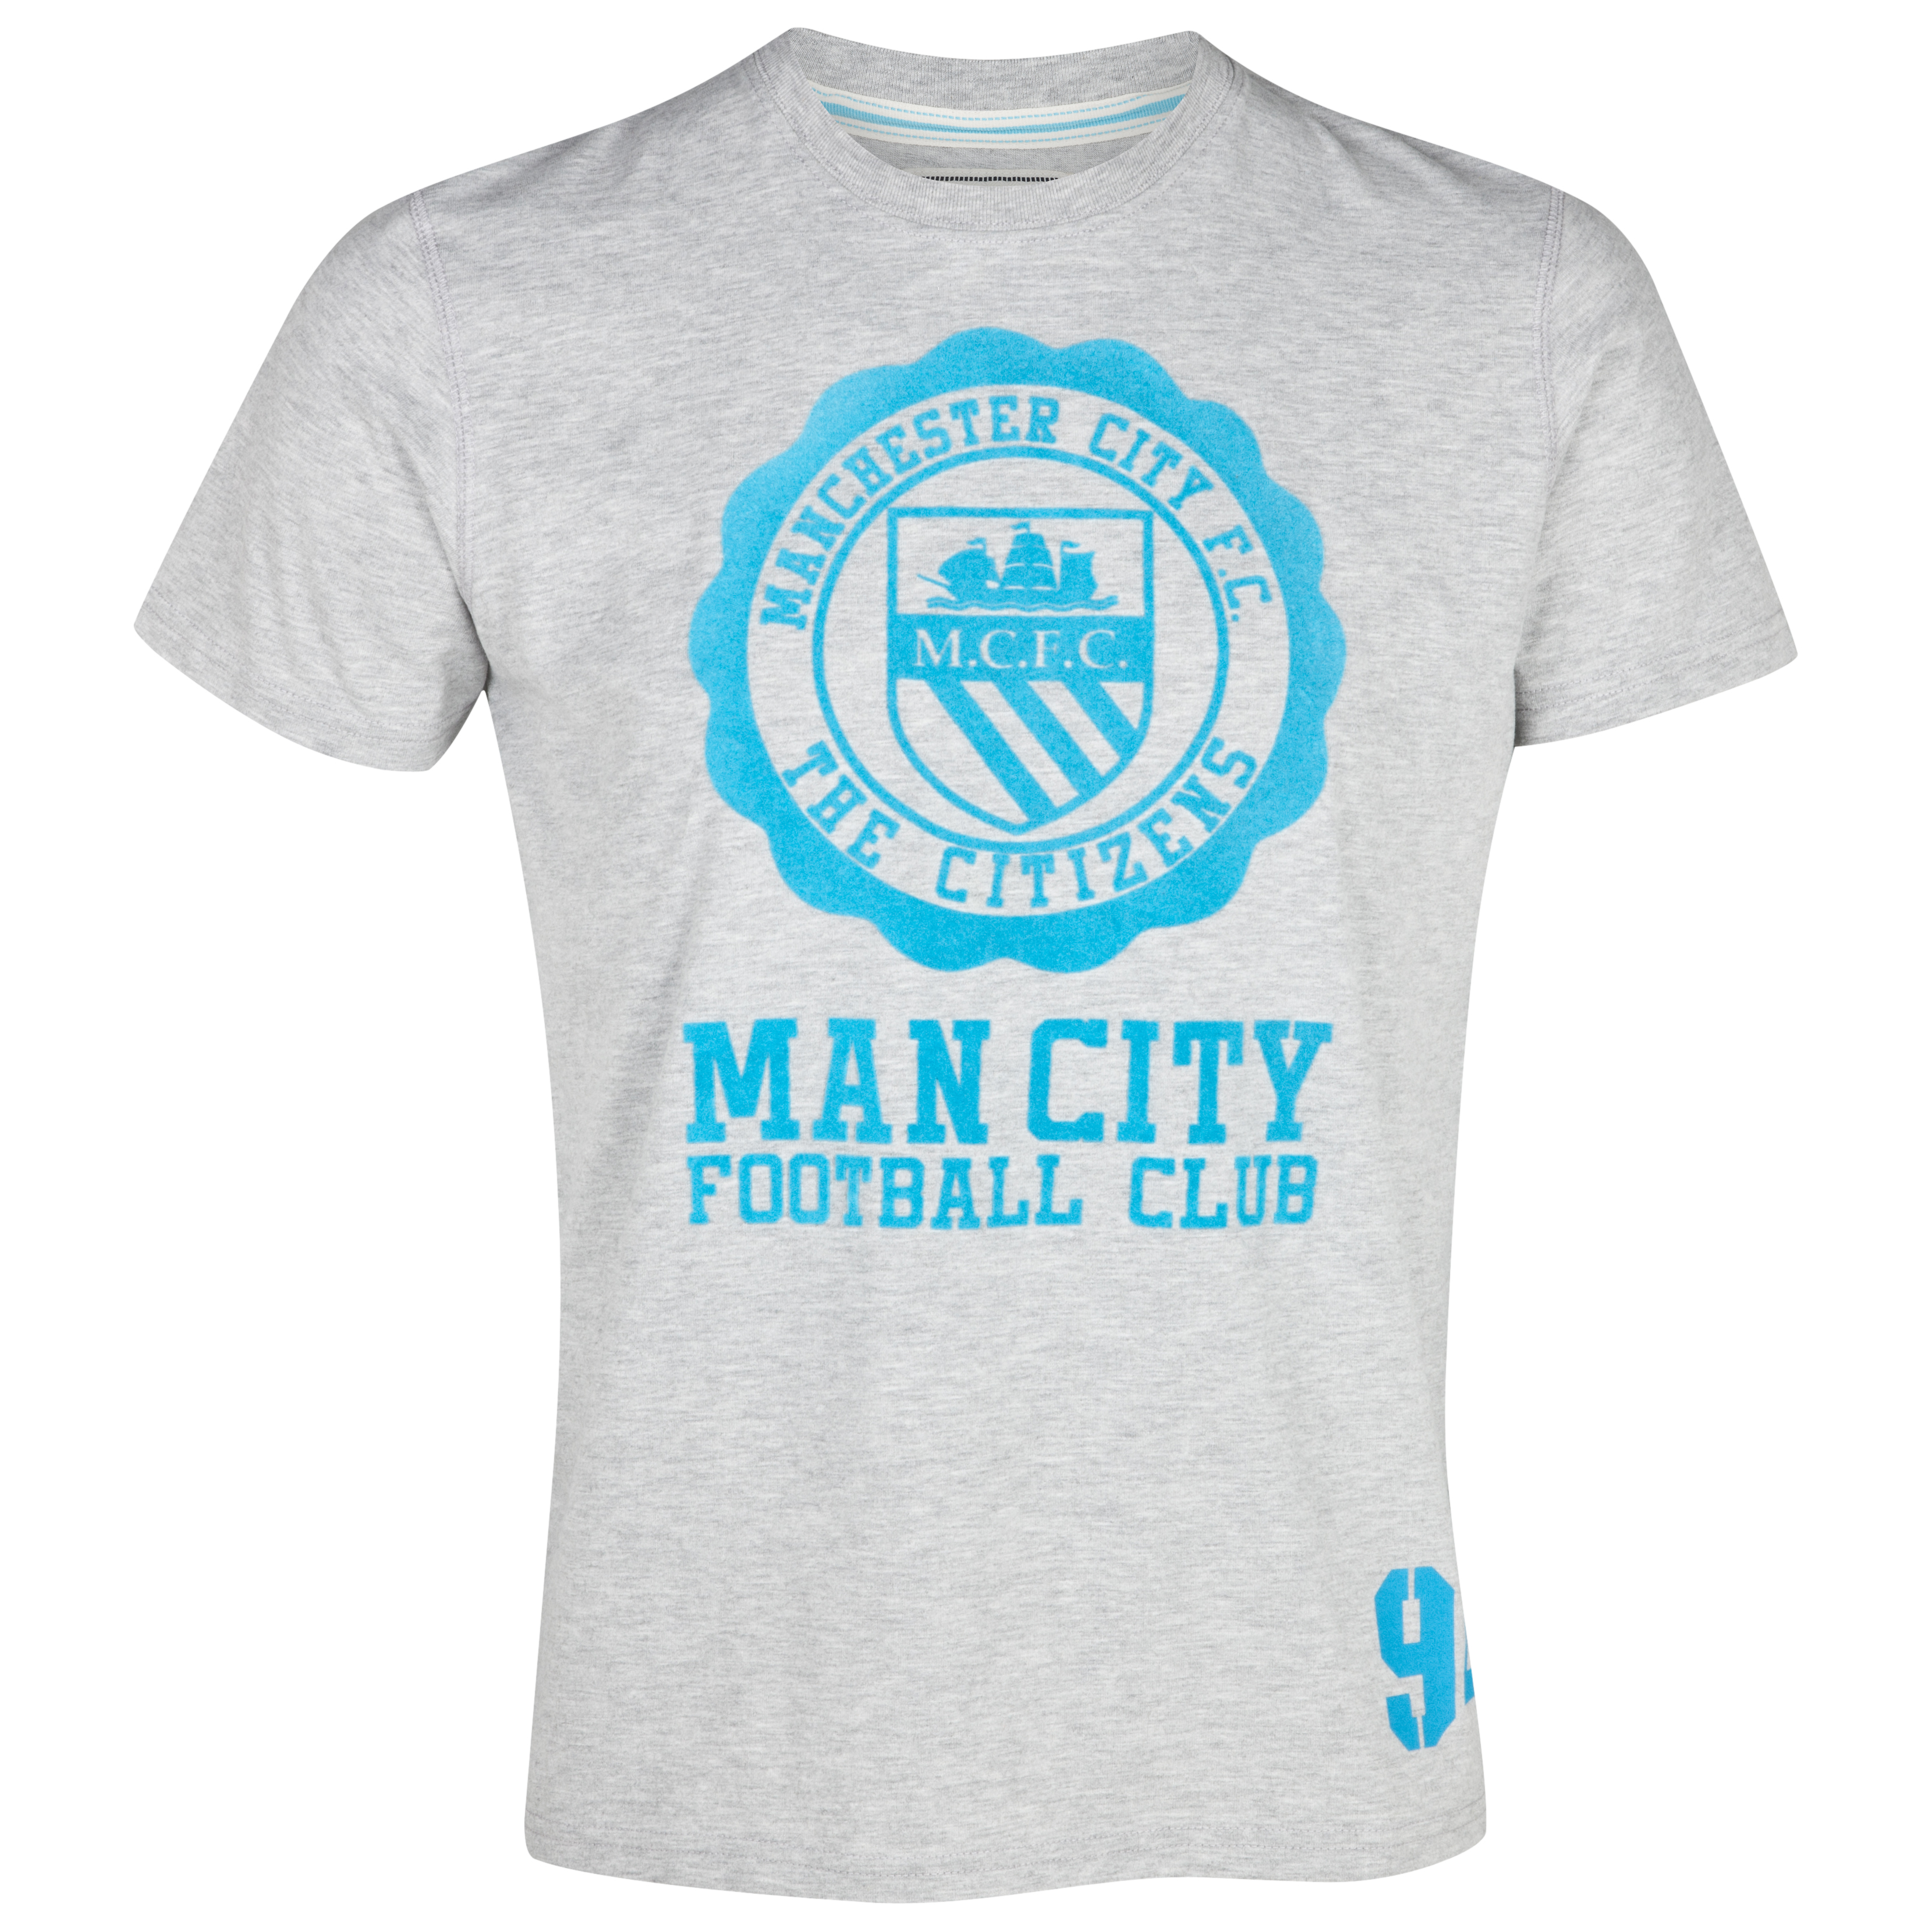 Manchester City Halo T-Shirt - Grey/Aqua - Older Boys